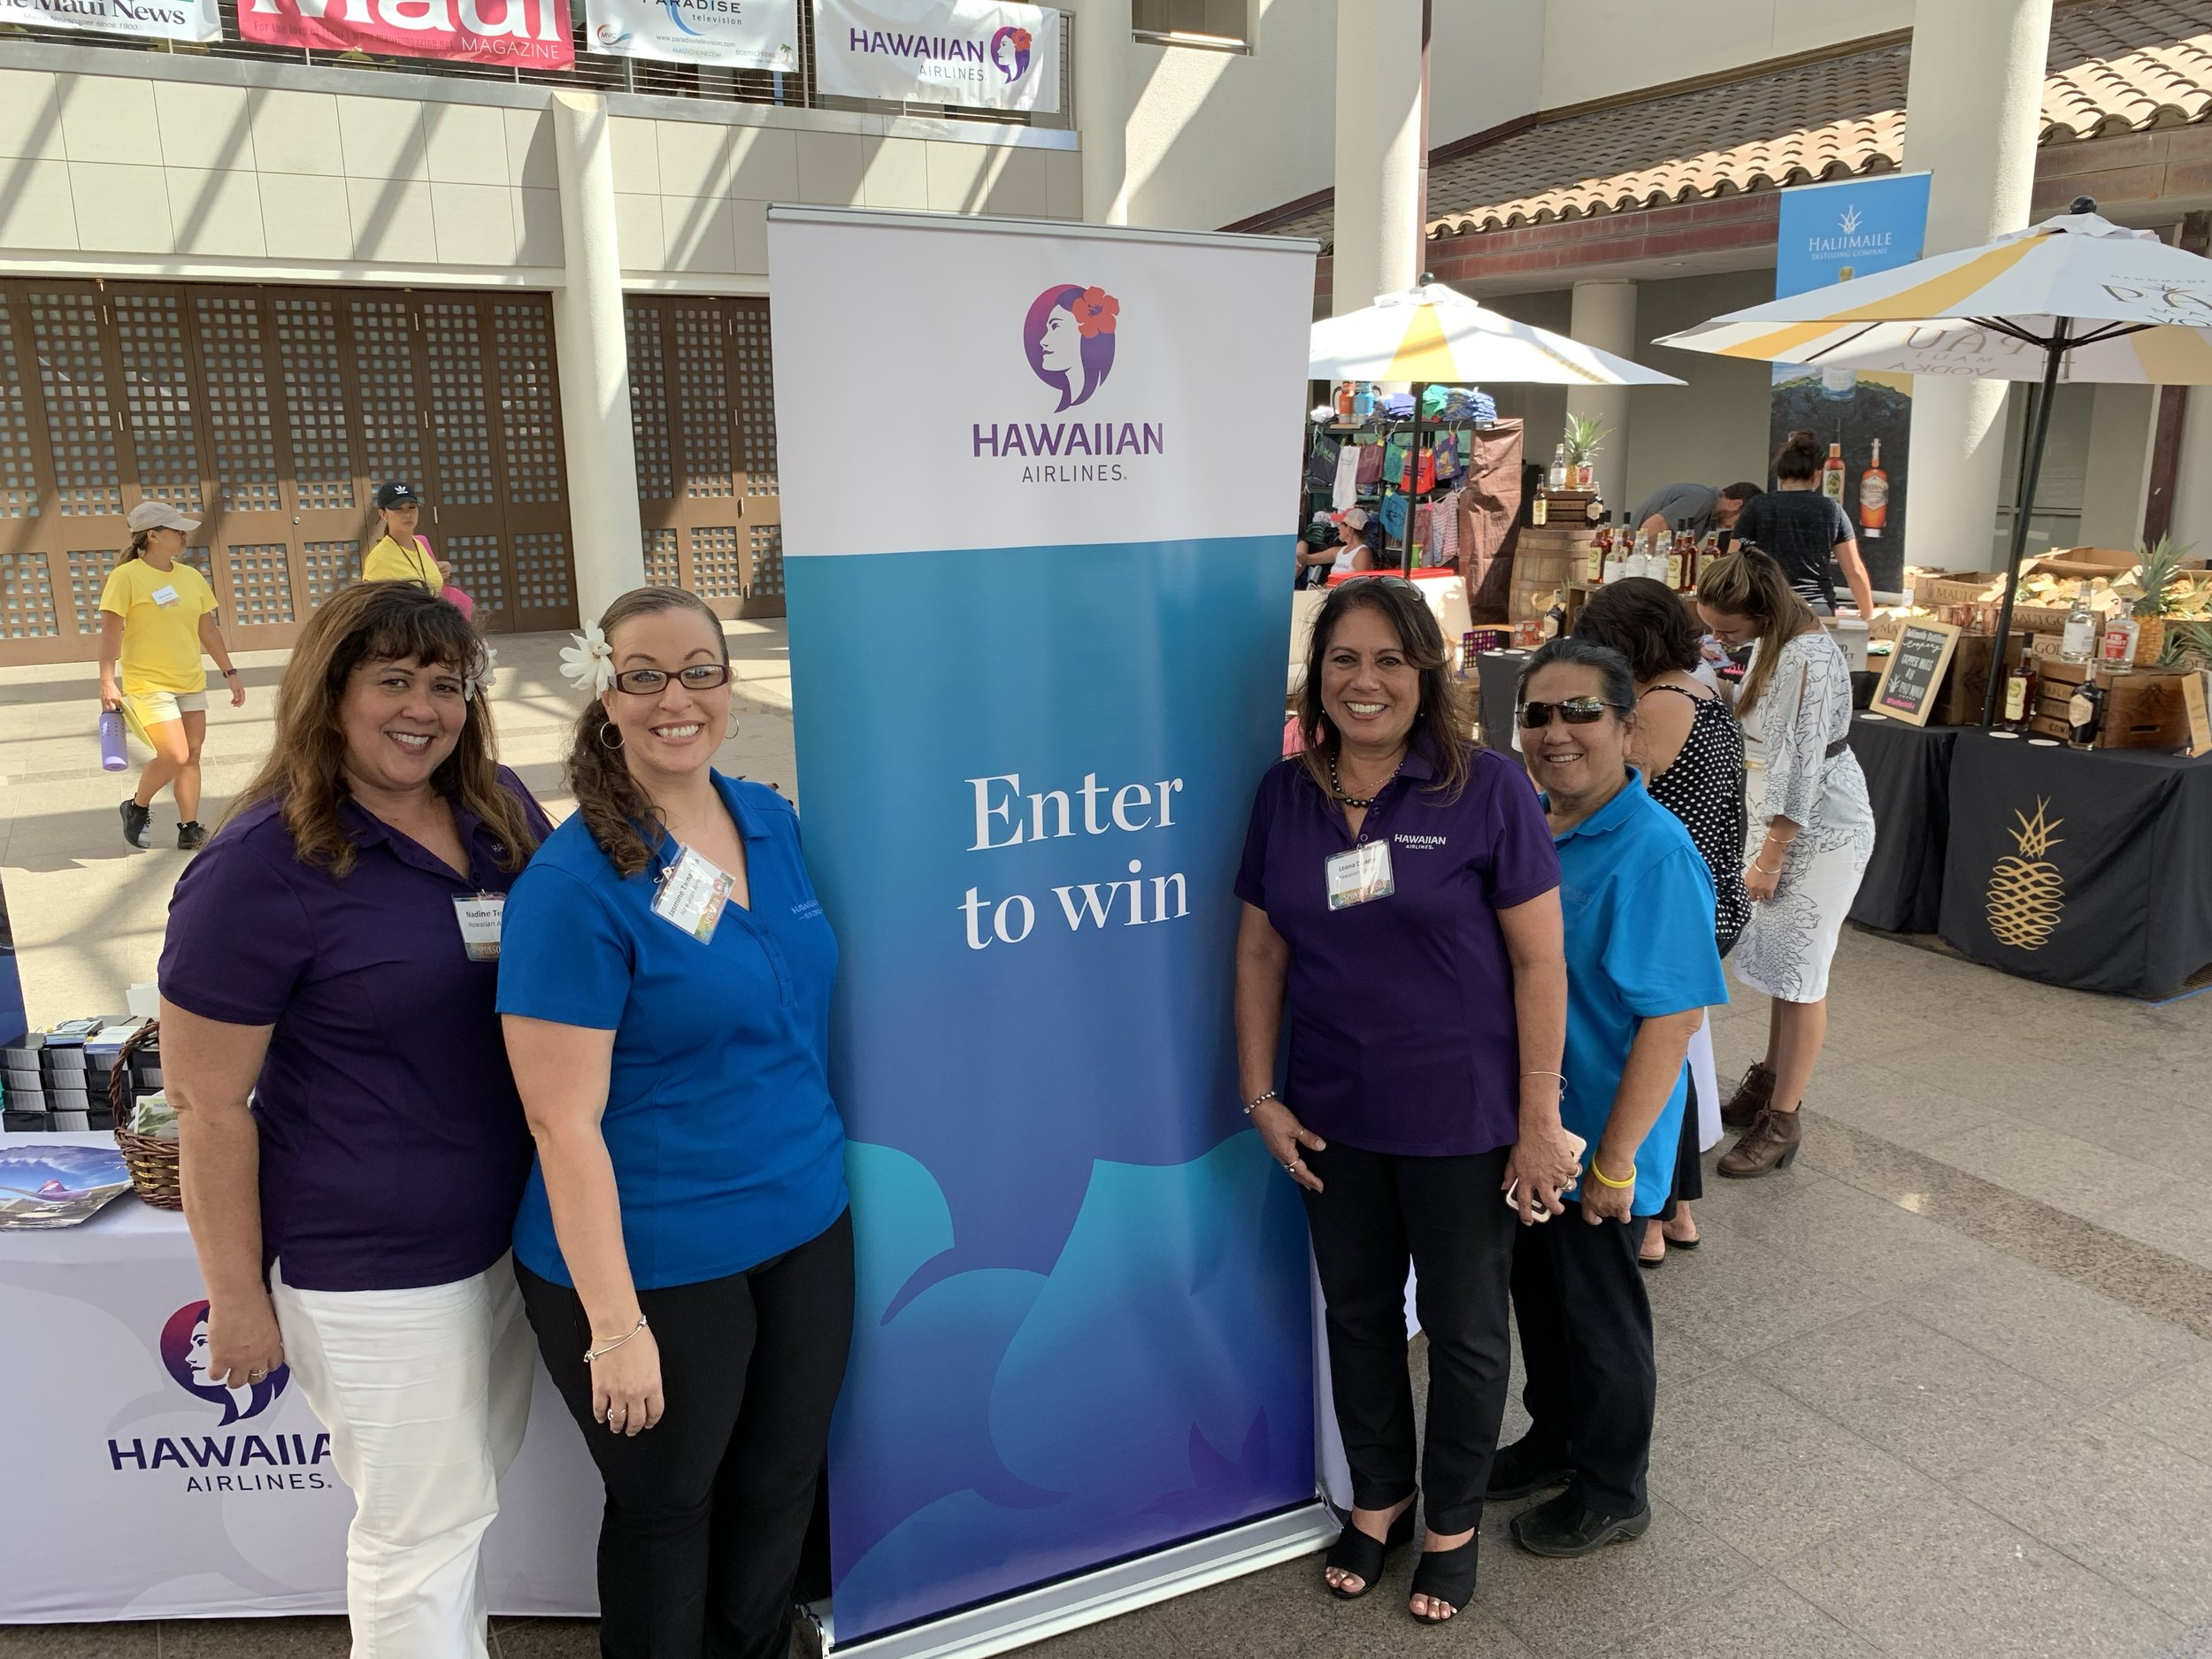 Members of Hawaiian Airlines team at the Made in Maui County Festival. Pictured from left: Nadine Texeira, Jasmine Tamanaha, Leona Duarte, and Merle Bernades.